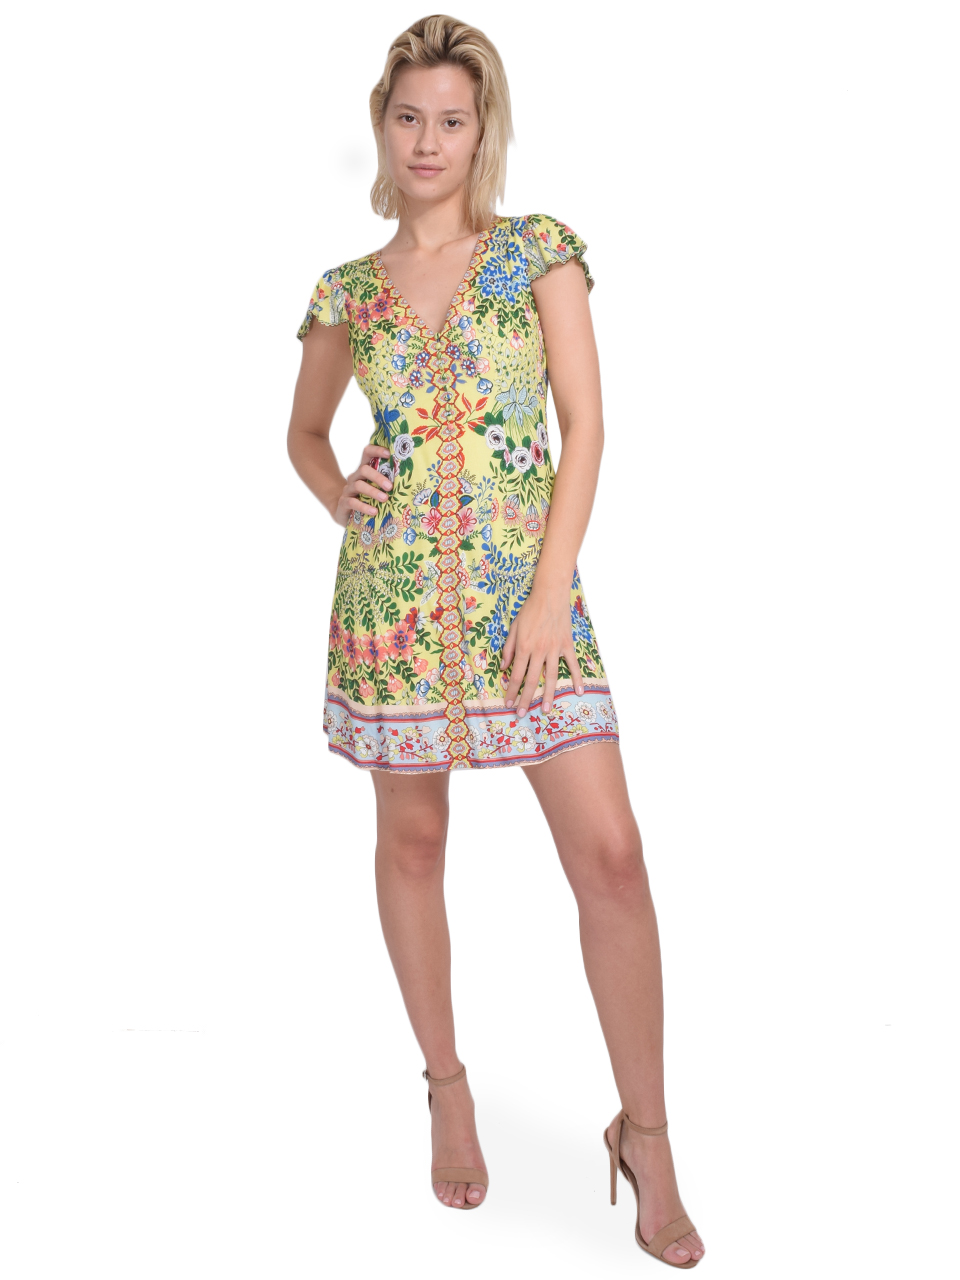 ALICE + OLIVIA Hadley Button Front Flare Dress in Wildflower Daffodil Front View  X1https://cdn11.bigcommerce.com/s-3wu6n/products/33201/images/109482/34__19111.1590180547.244.365.jpg?c=2X2